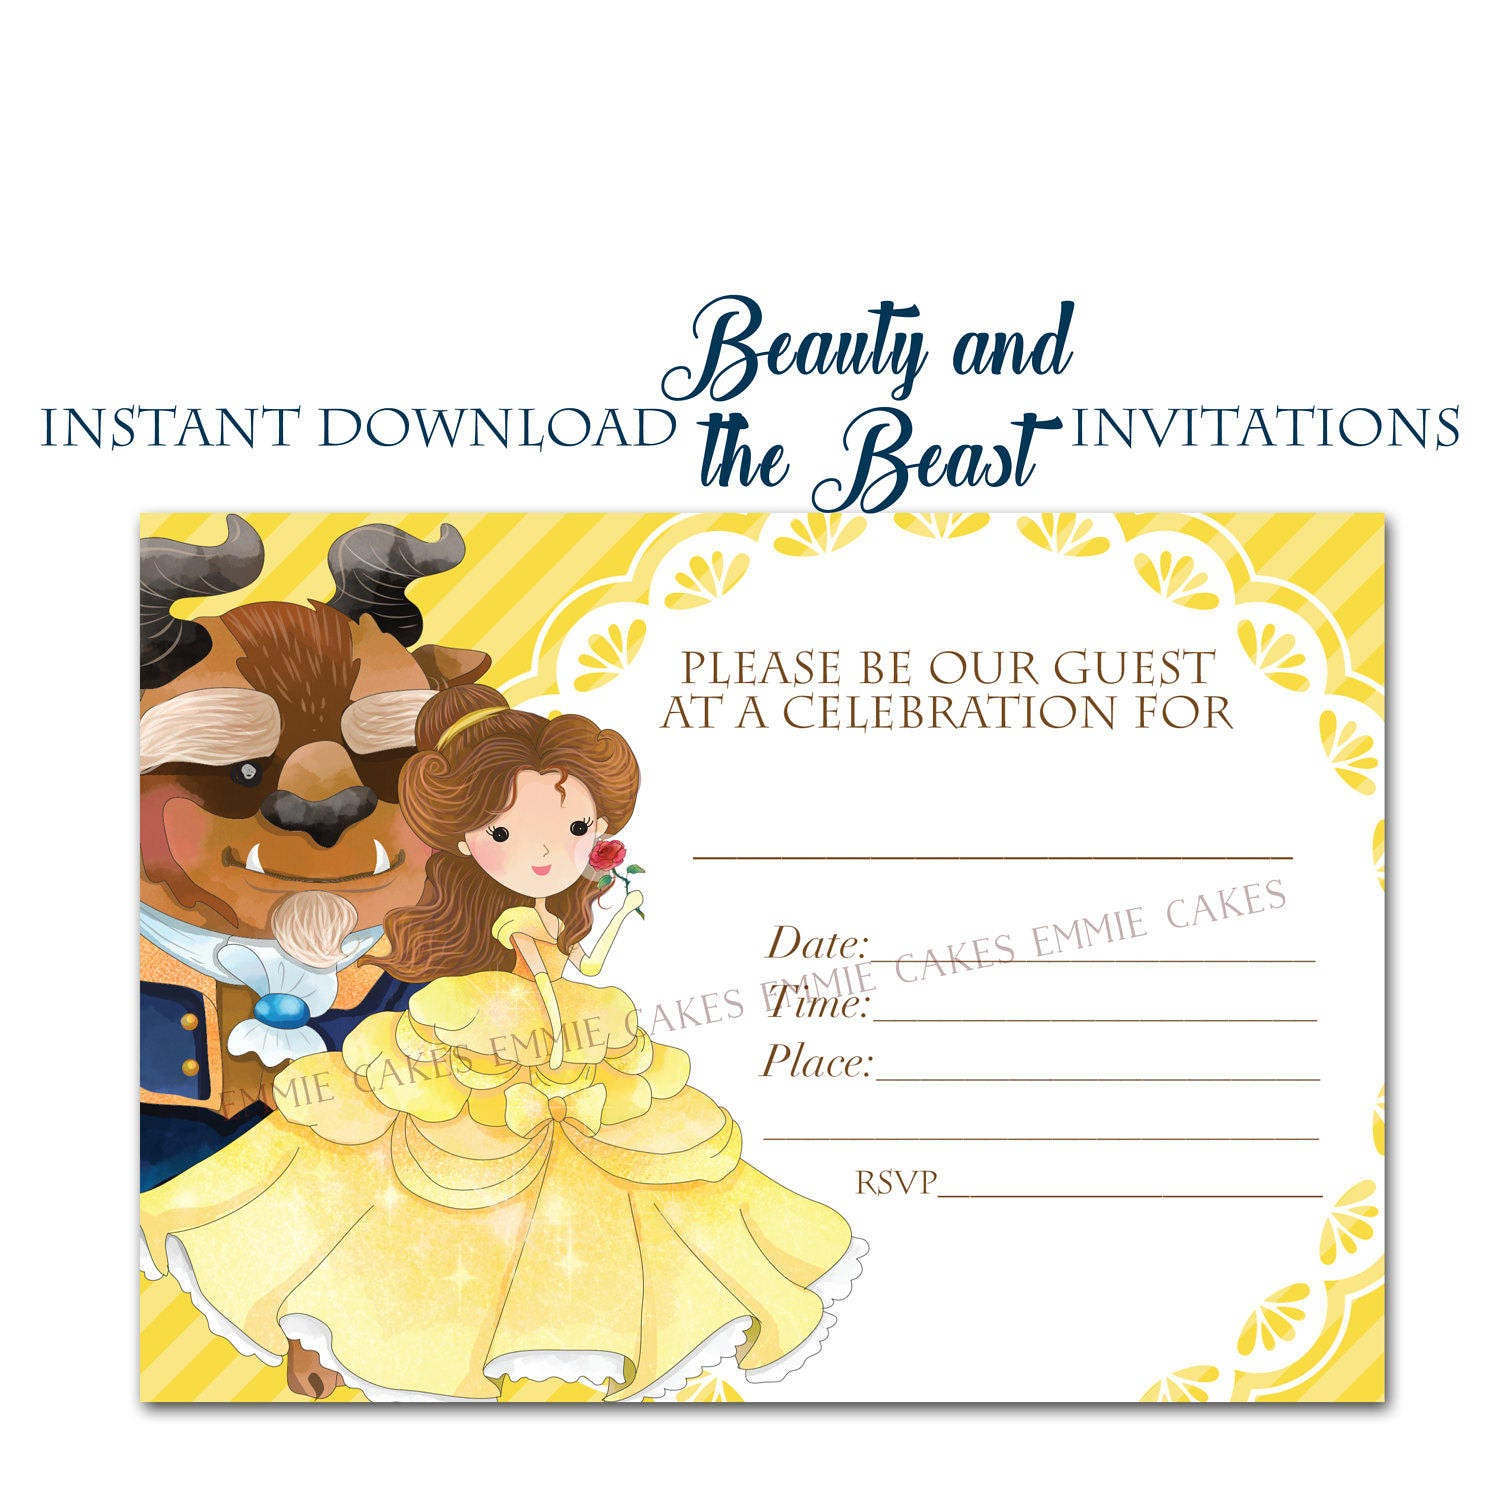 Beauty and the Beast Invitation Instant Download Fill-in 5x7   Etsy